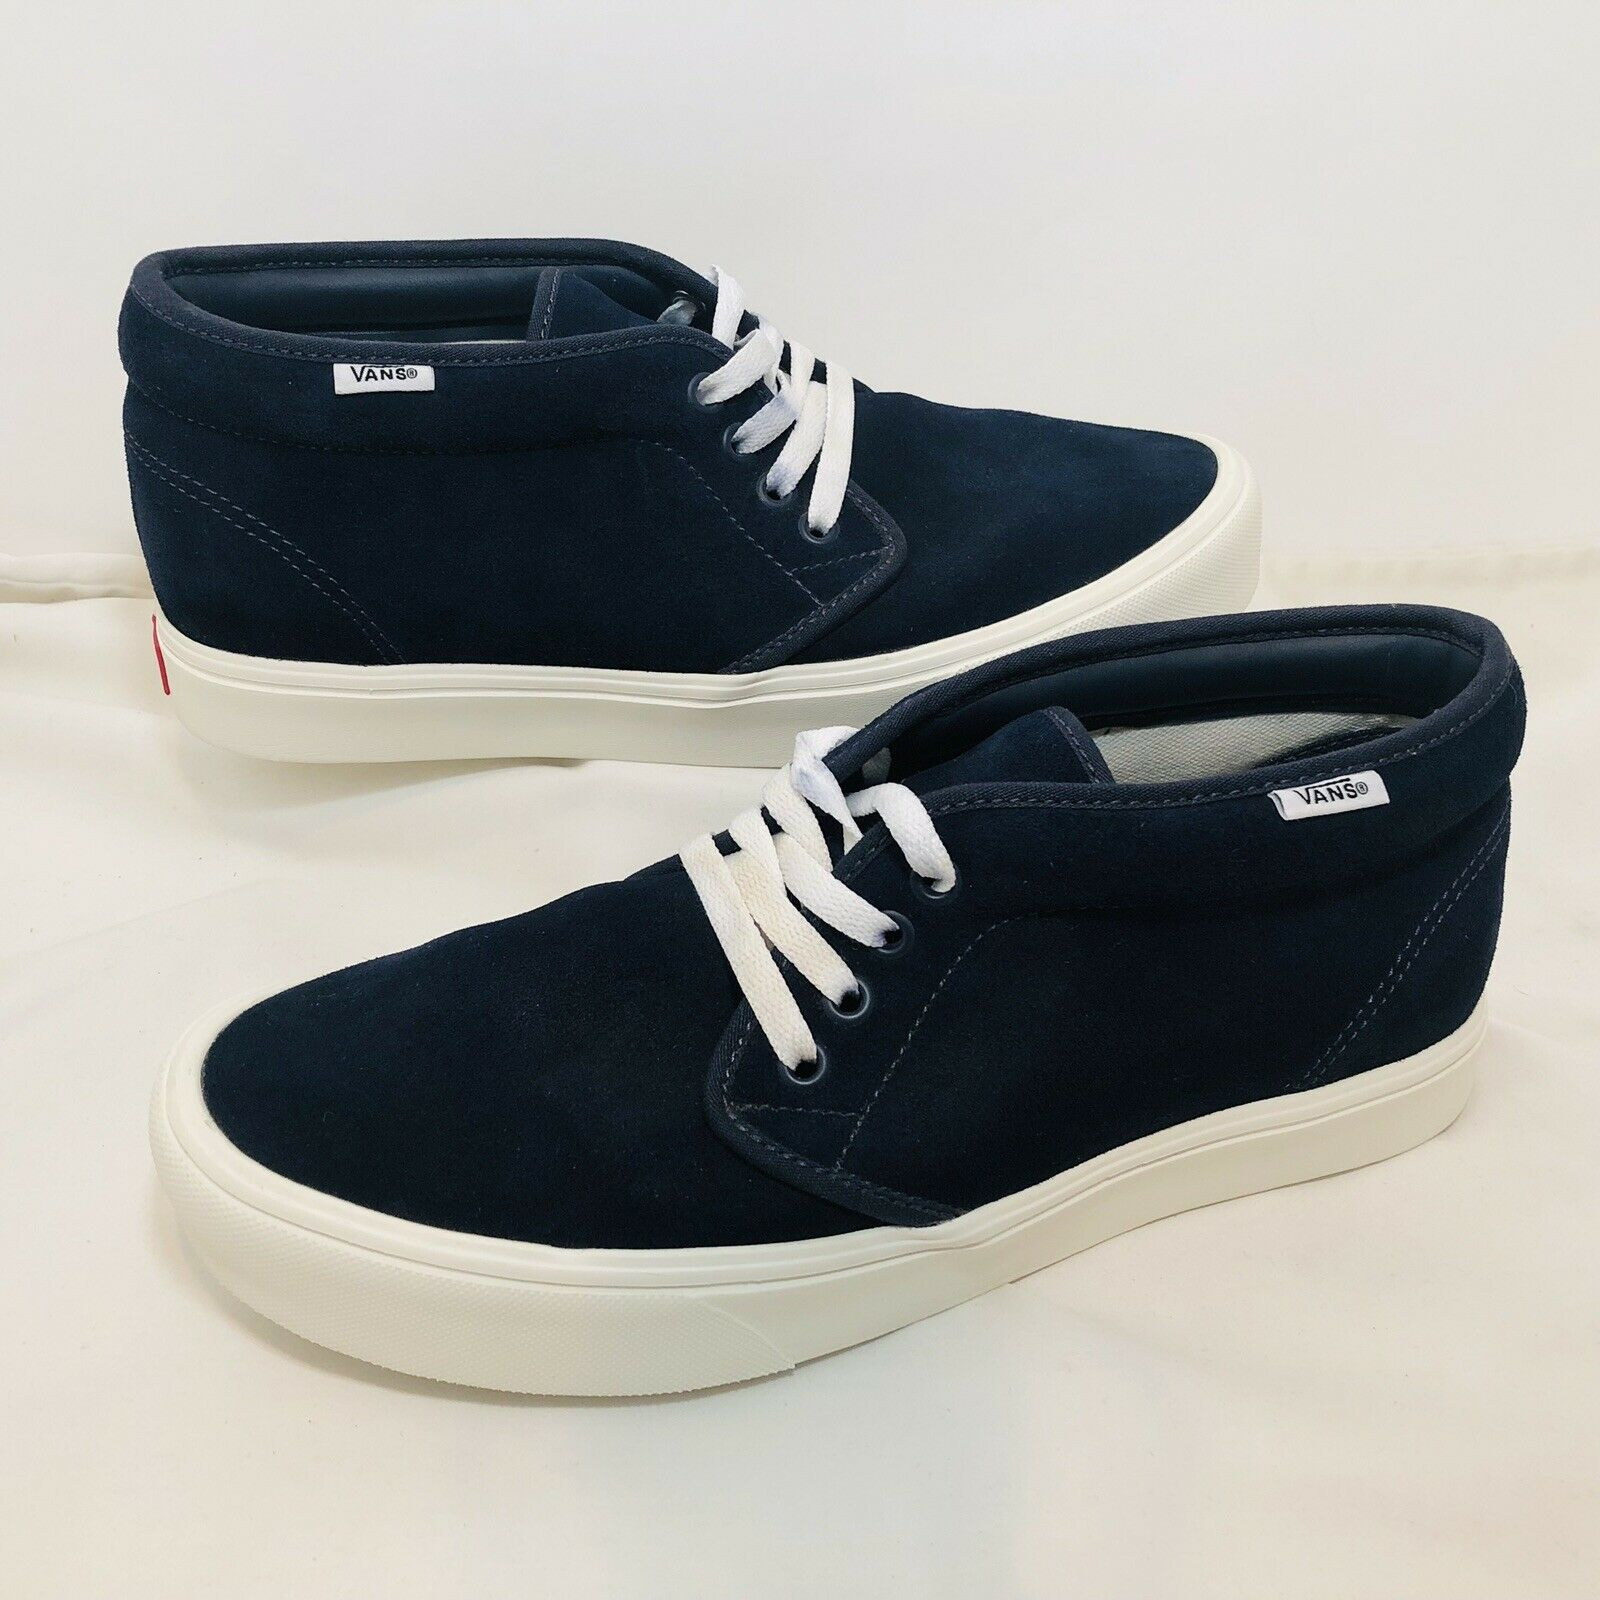 Vans Mens Suede Mid Top Sneakers Size 9 Mens